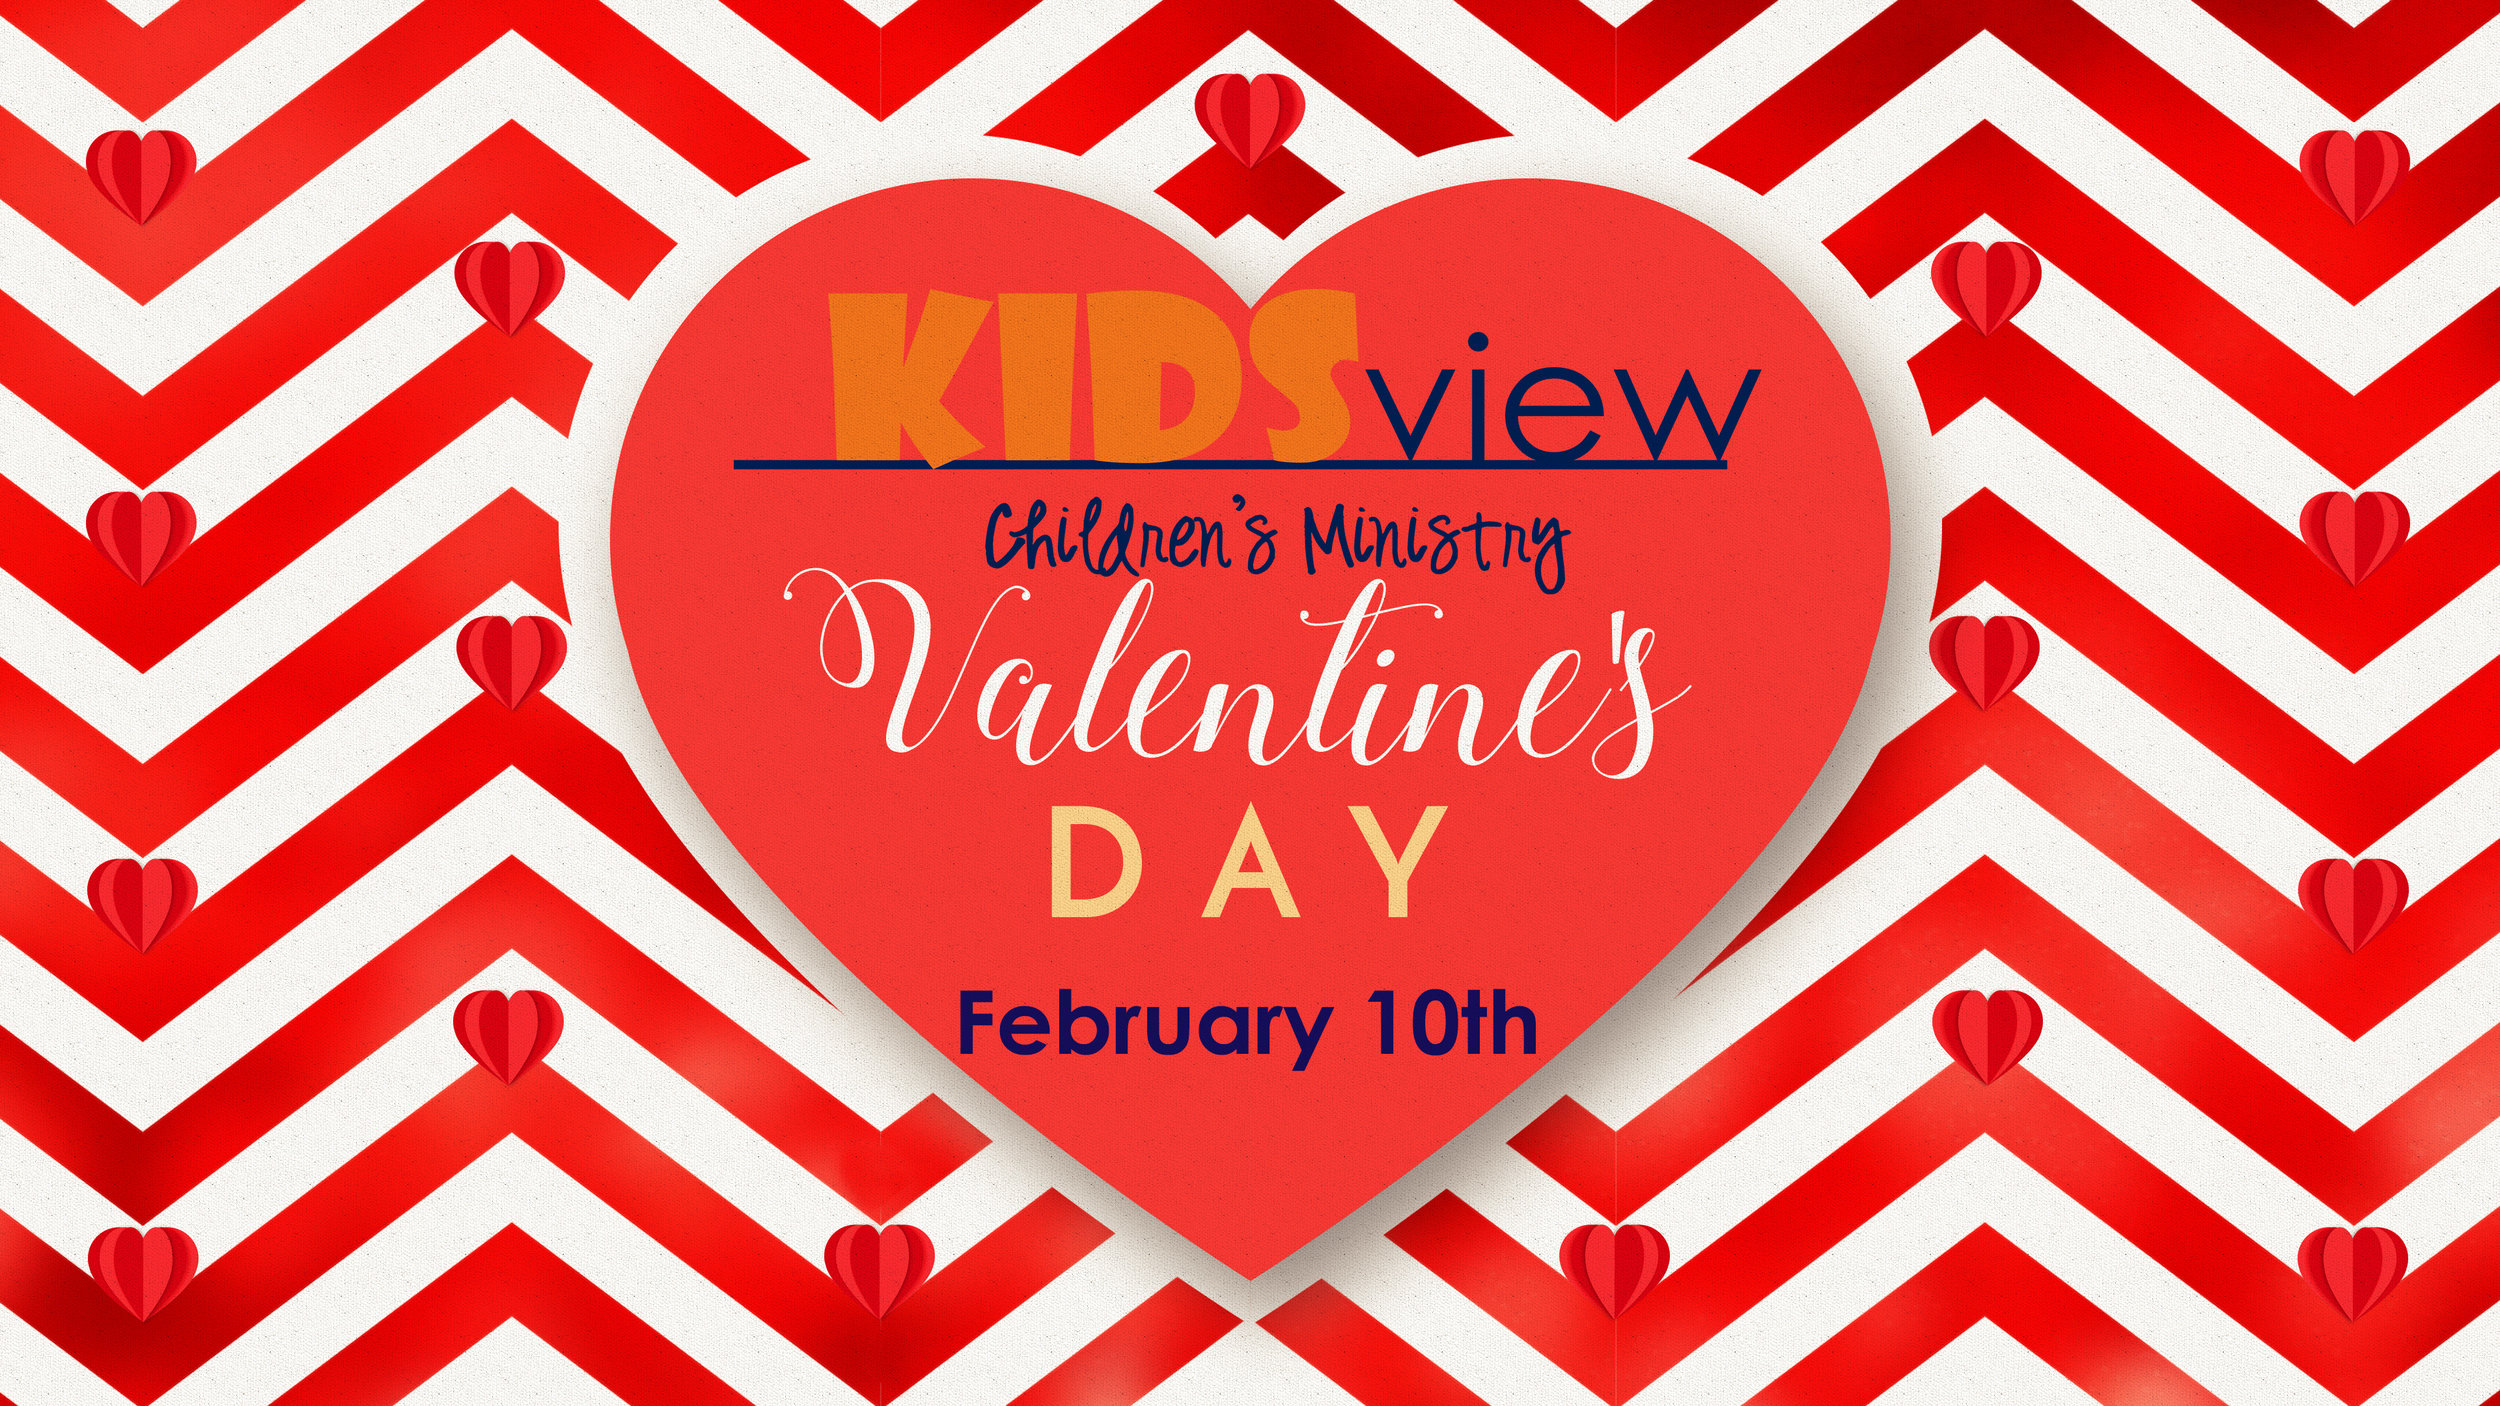 kidsview valentines day.jpg